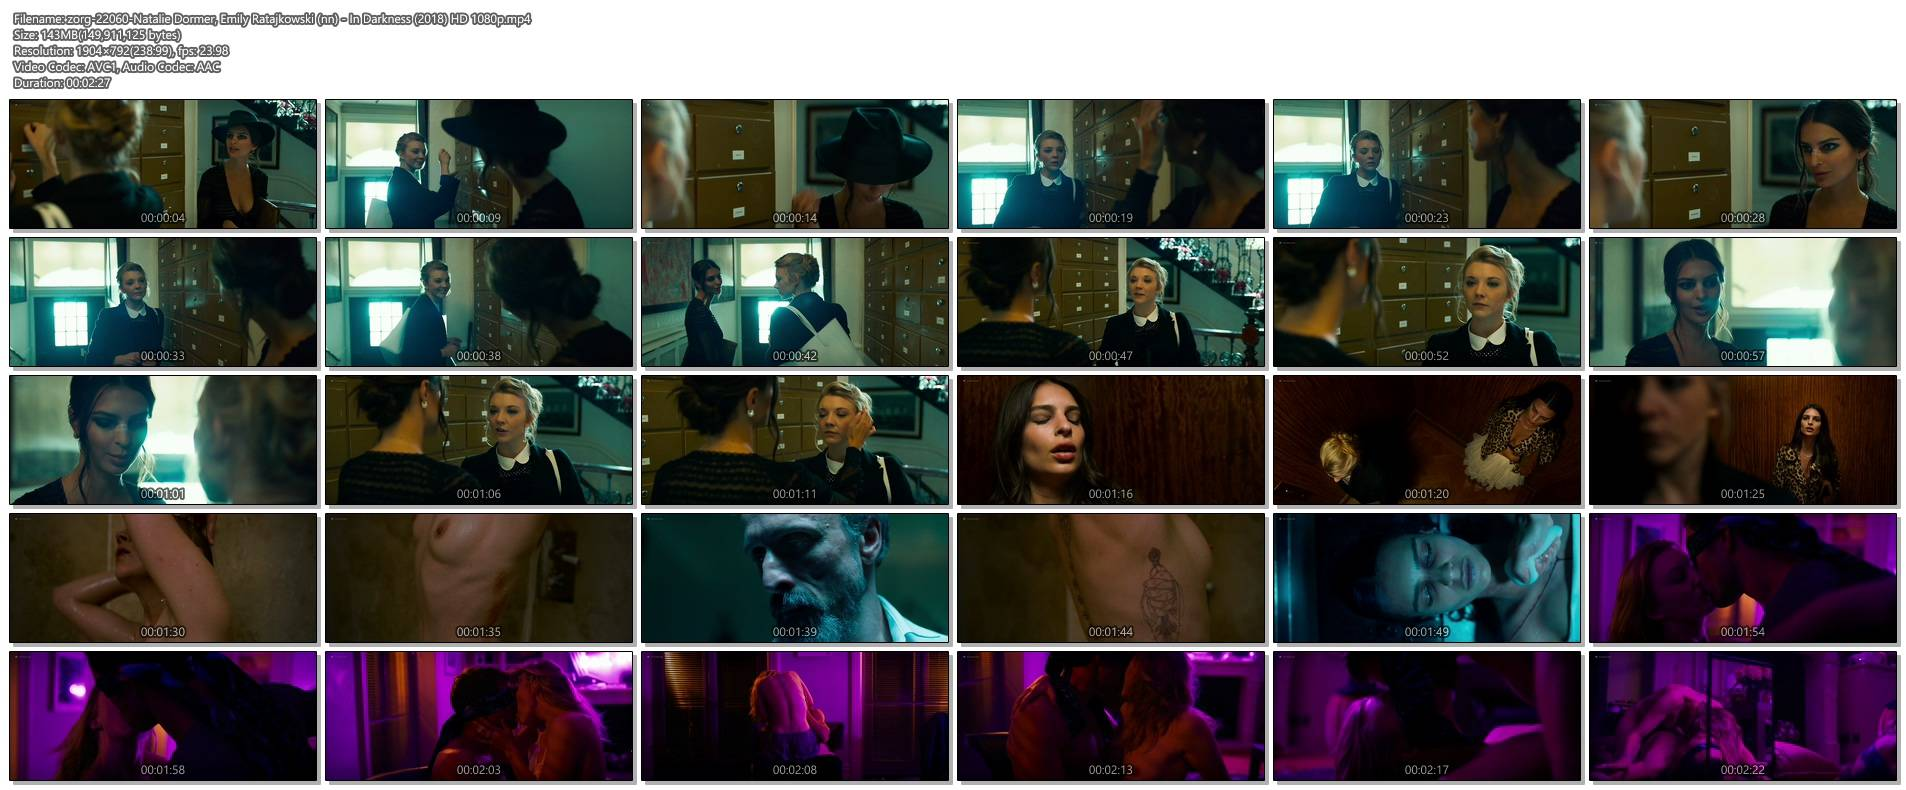 Natalie Dormer nude topless in the shower and sex Emily Ratajkowski hot - In Darkness (2018) HD 1080p (1)